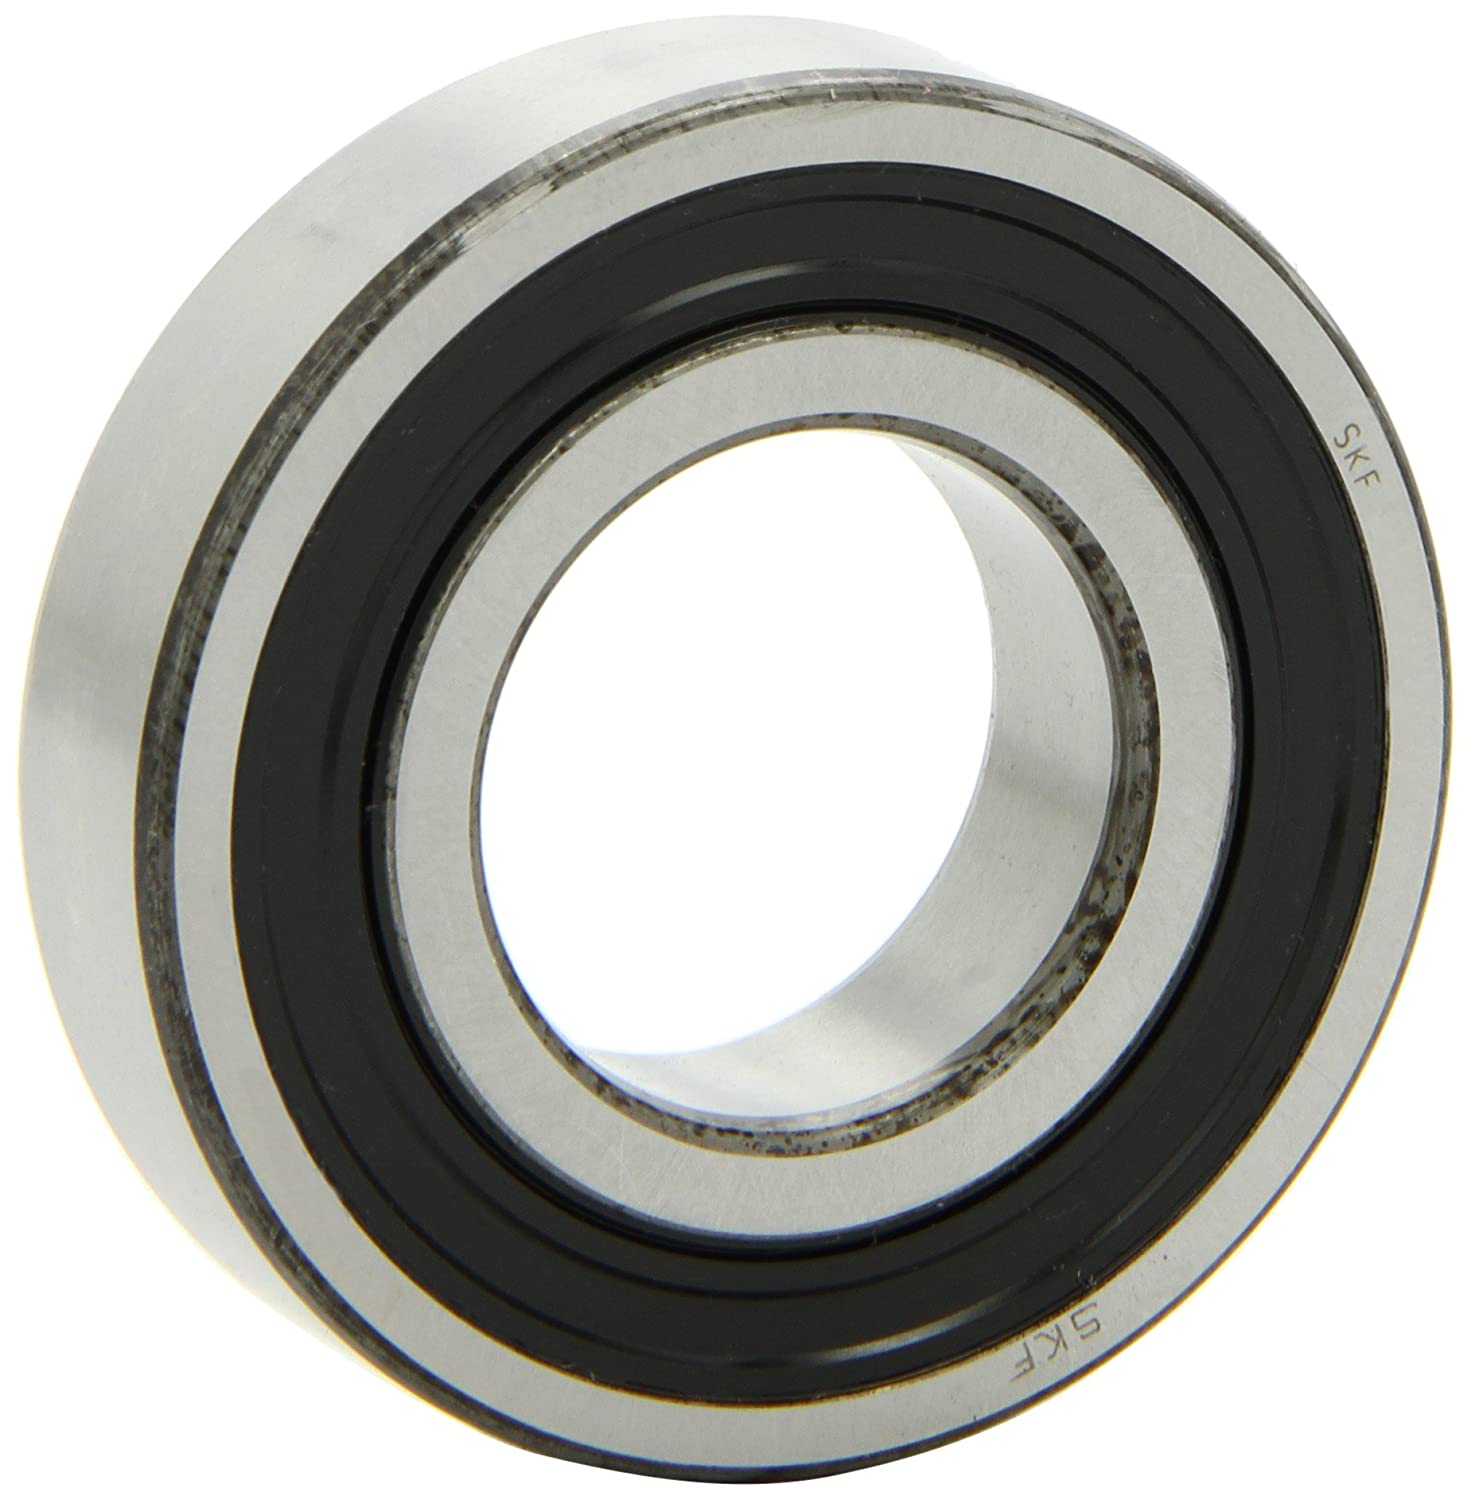 6206RS 30x62x16 6206-2RS Premium Rubber Sealed Ball Bearing 1 PC